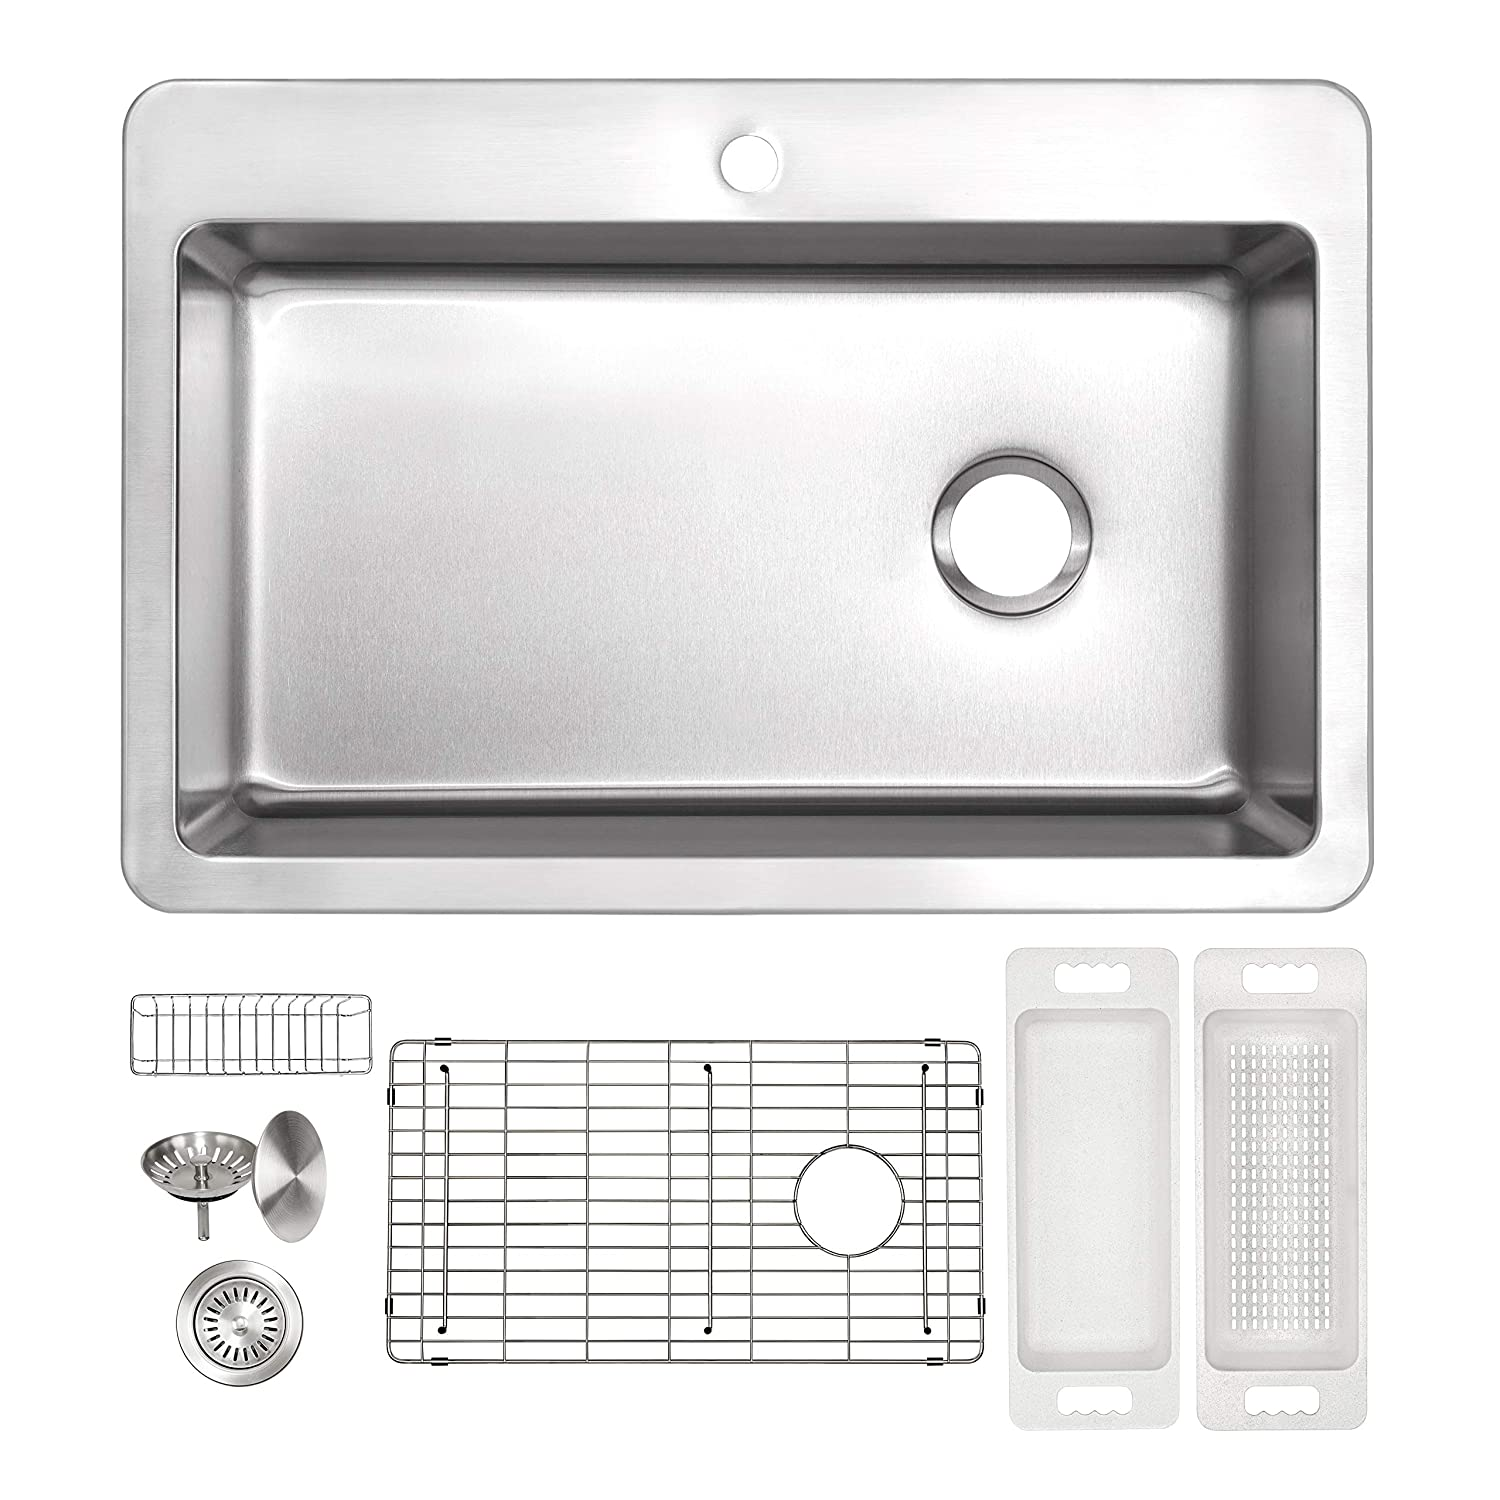 ZUHNE 16G Drop In Offset Drain Stainless Steel Kitchen Sink 33 x 22 Inch Single Over Mount